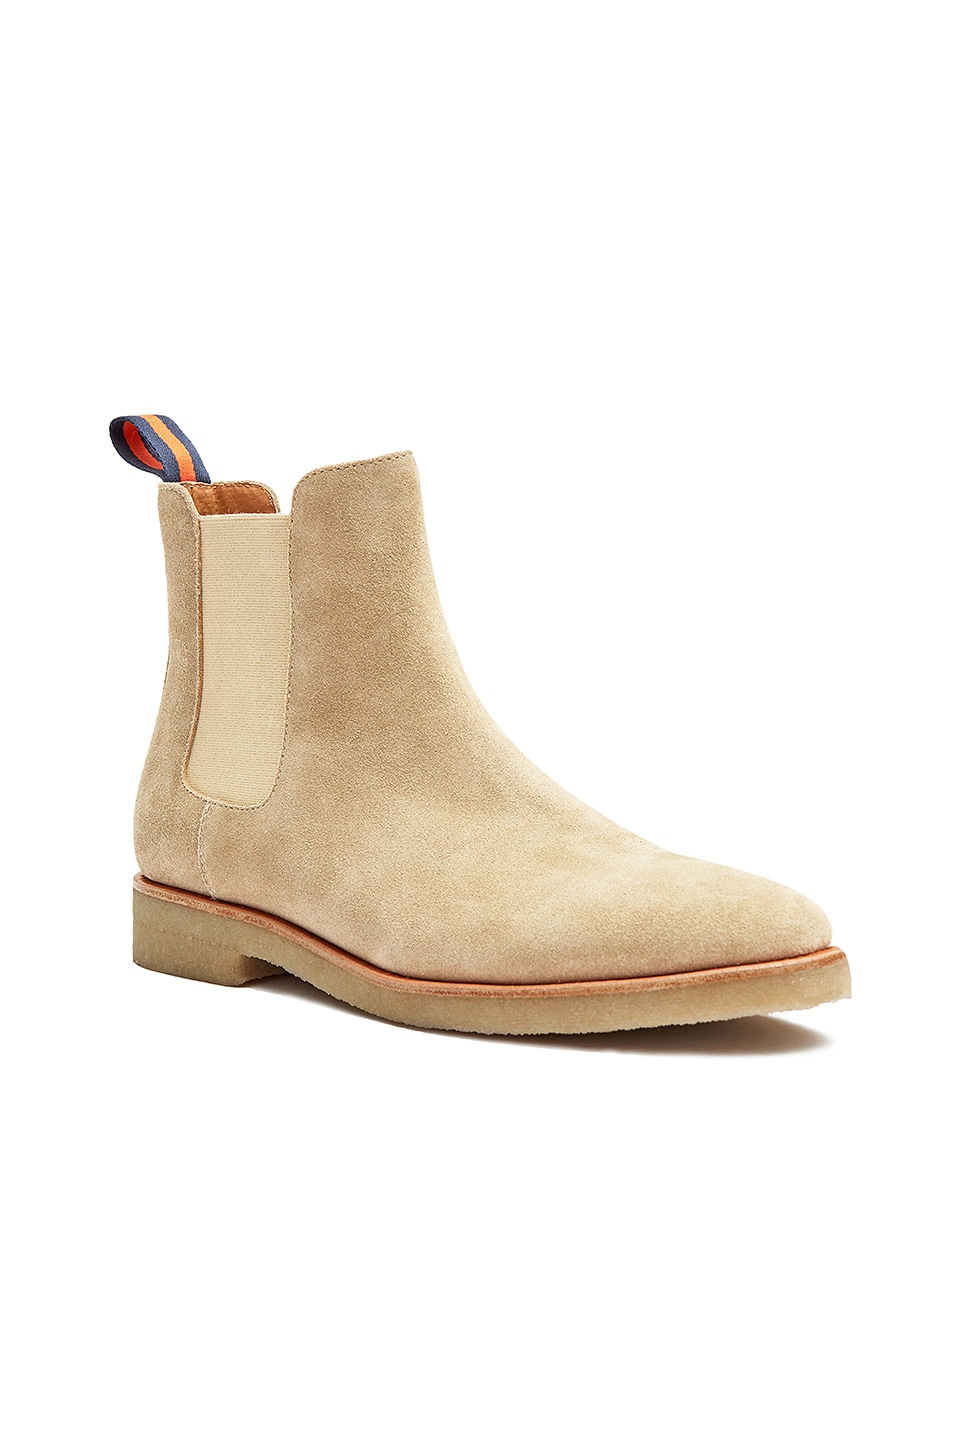 New Republic by Mark McNairy Chuck Chelsea Boot in Sand